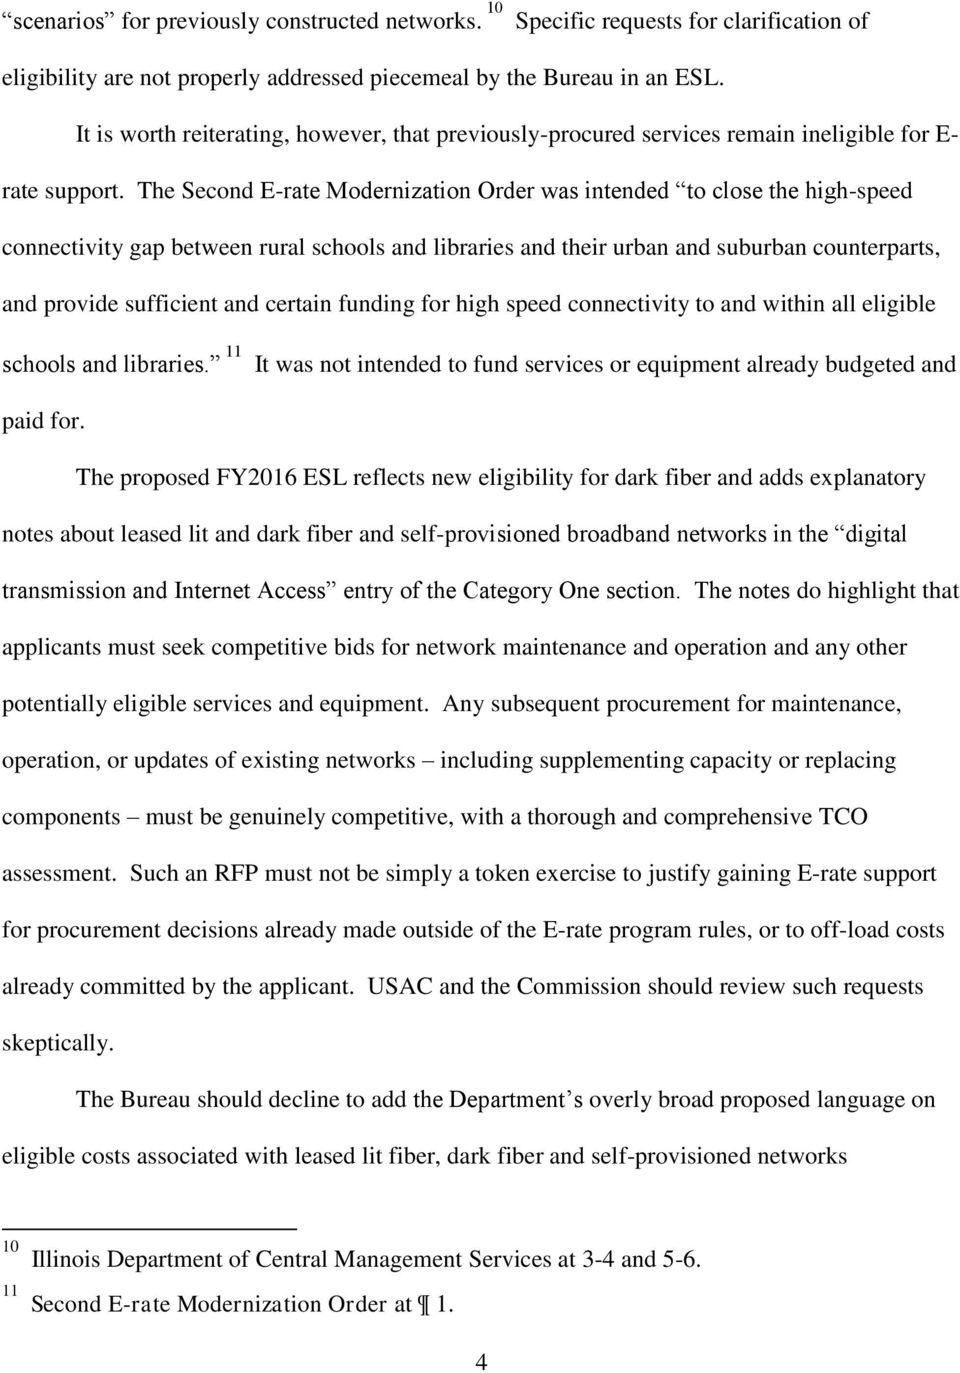 The Second E-rate Modernization Order was intended to close the high-speed connectivity gap between rural schools and libraries and their urban and suburban counterparts, and provide sufficient and